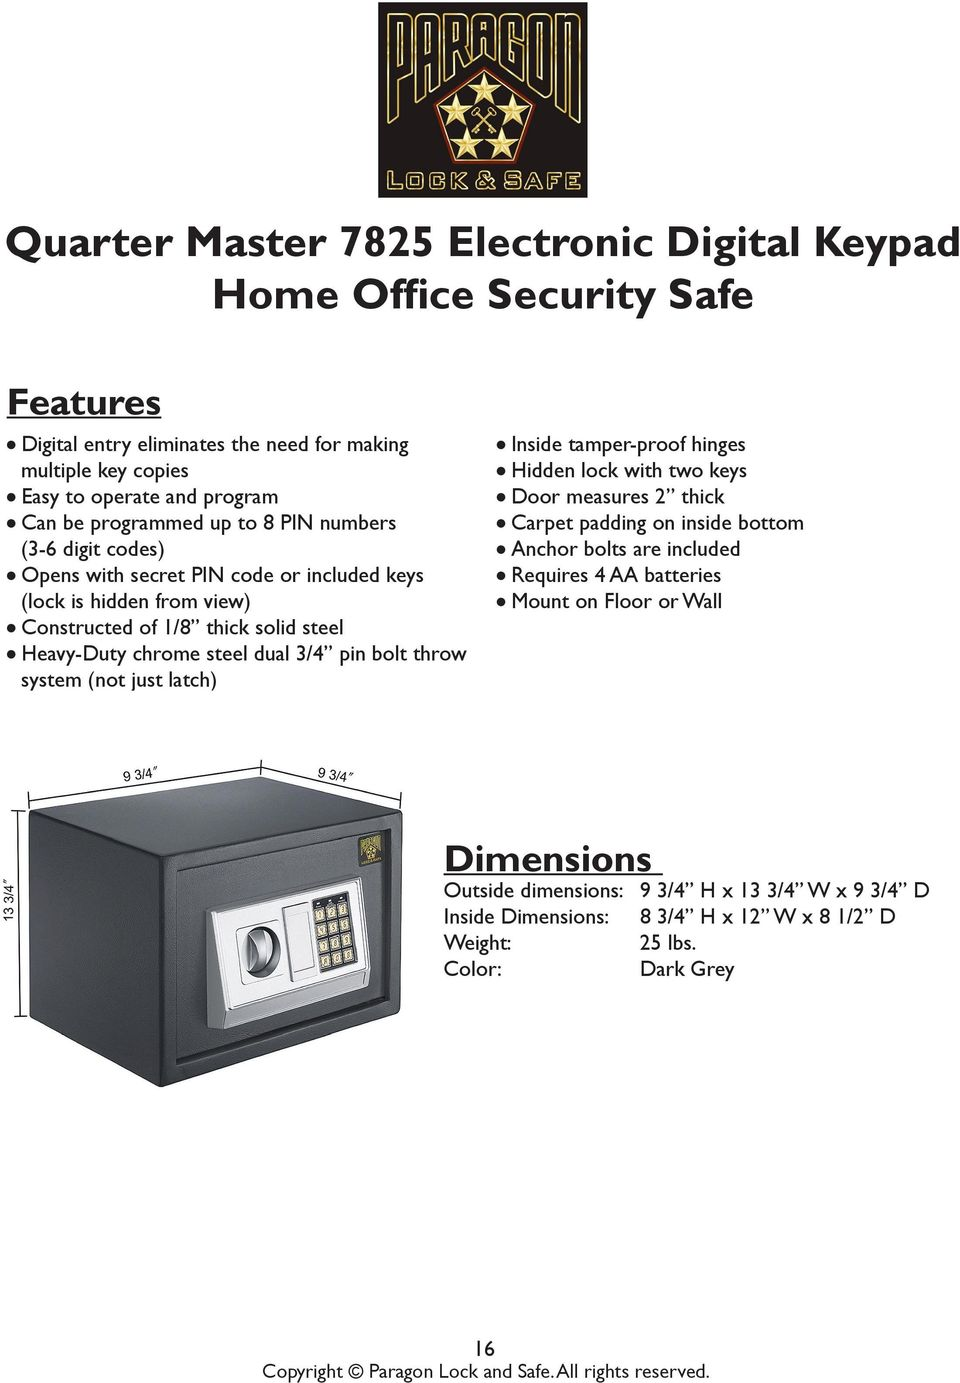 Operating Manuals For Safe Models Pdf Picture Of Quiz Show Buzzer System Using Staples Easy Button Dual 3 4 Pin Bolt Throw Not Just Latch L Inside Tamper